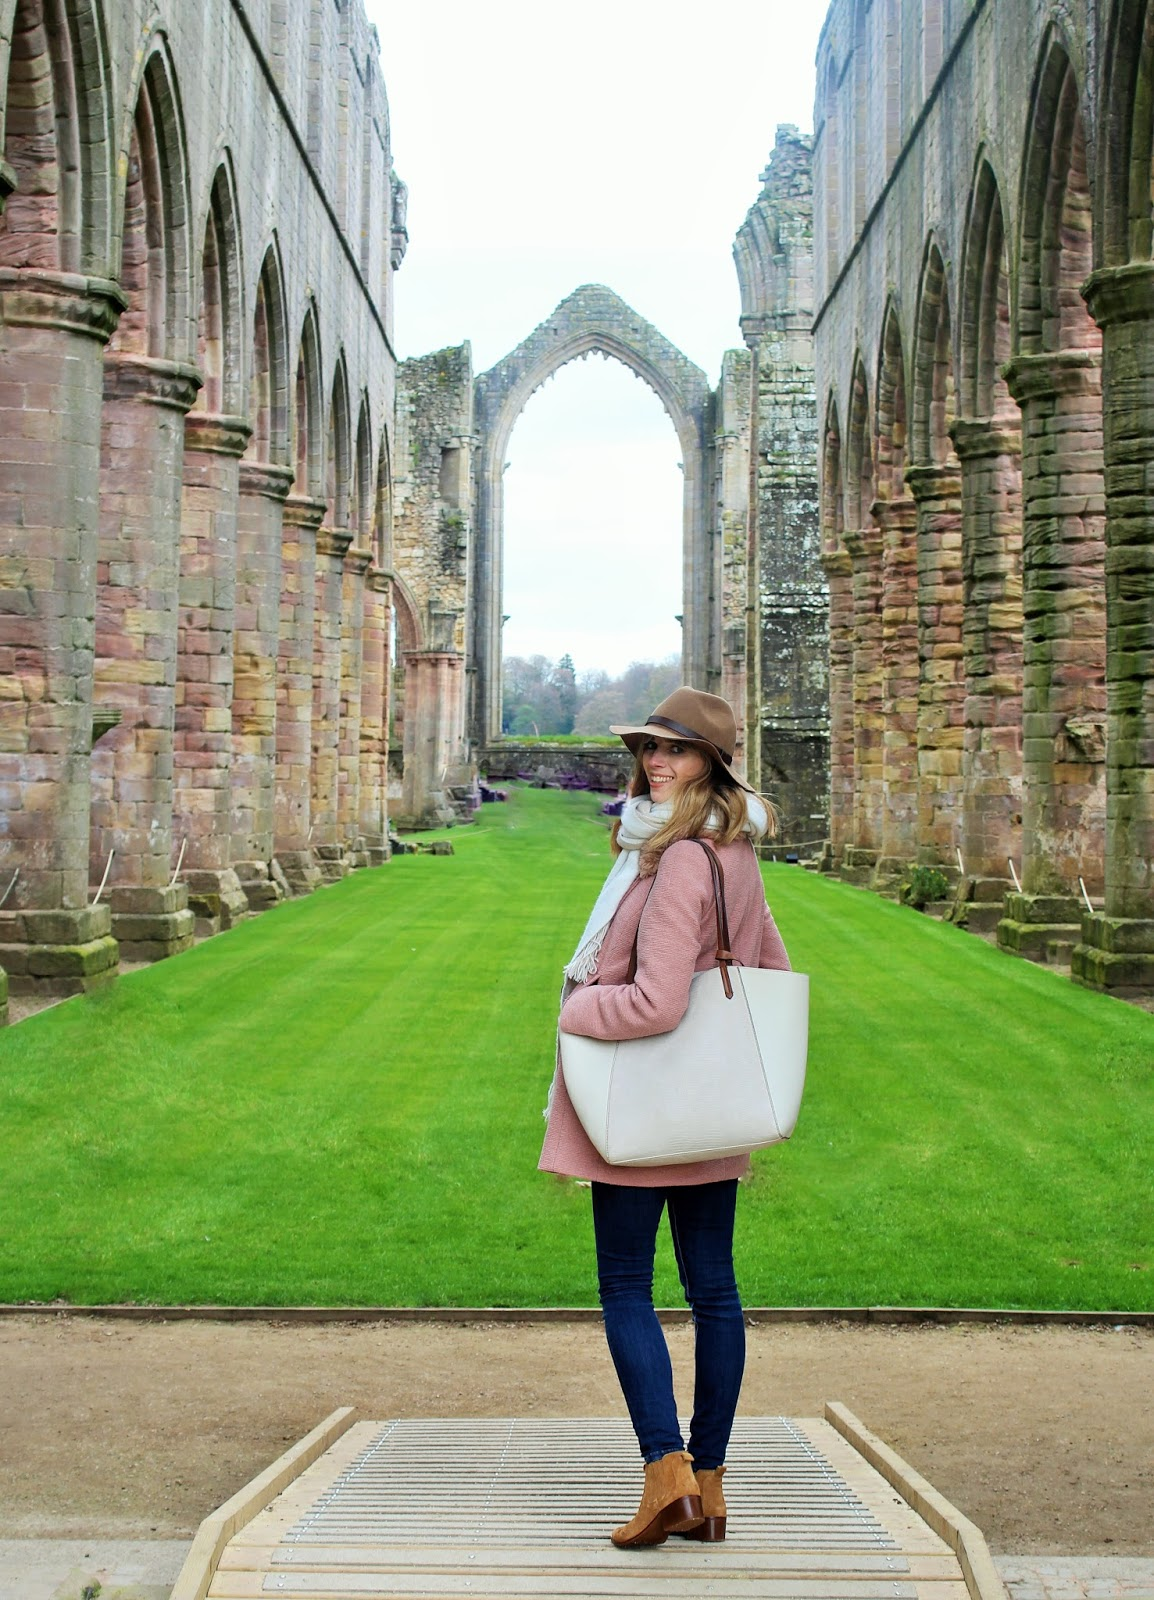 A Trip to North Yorkshire 48 - Fountains Abbey